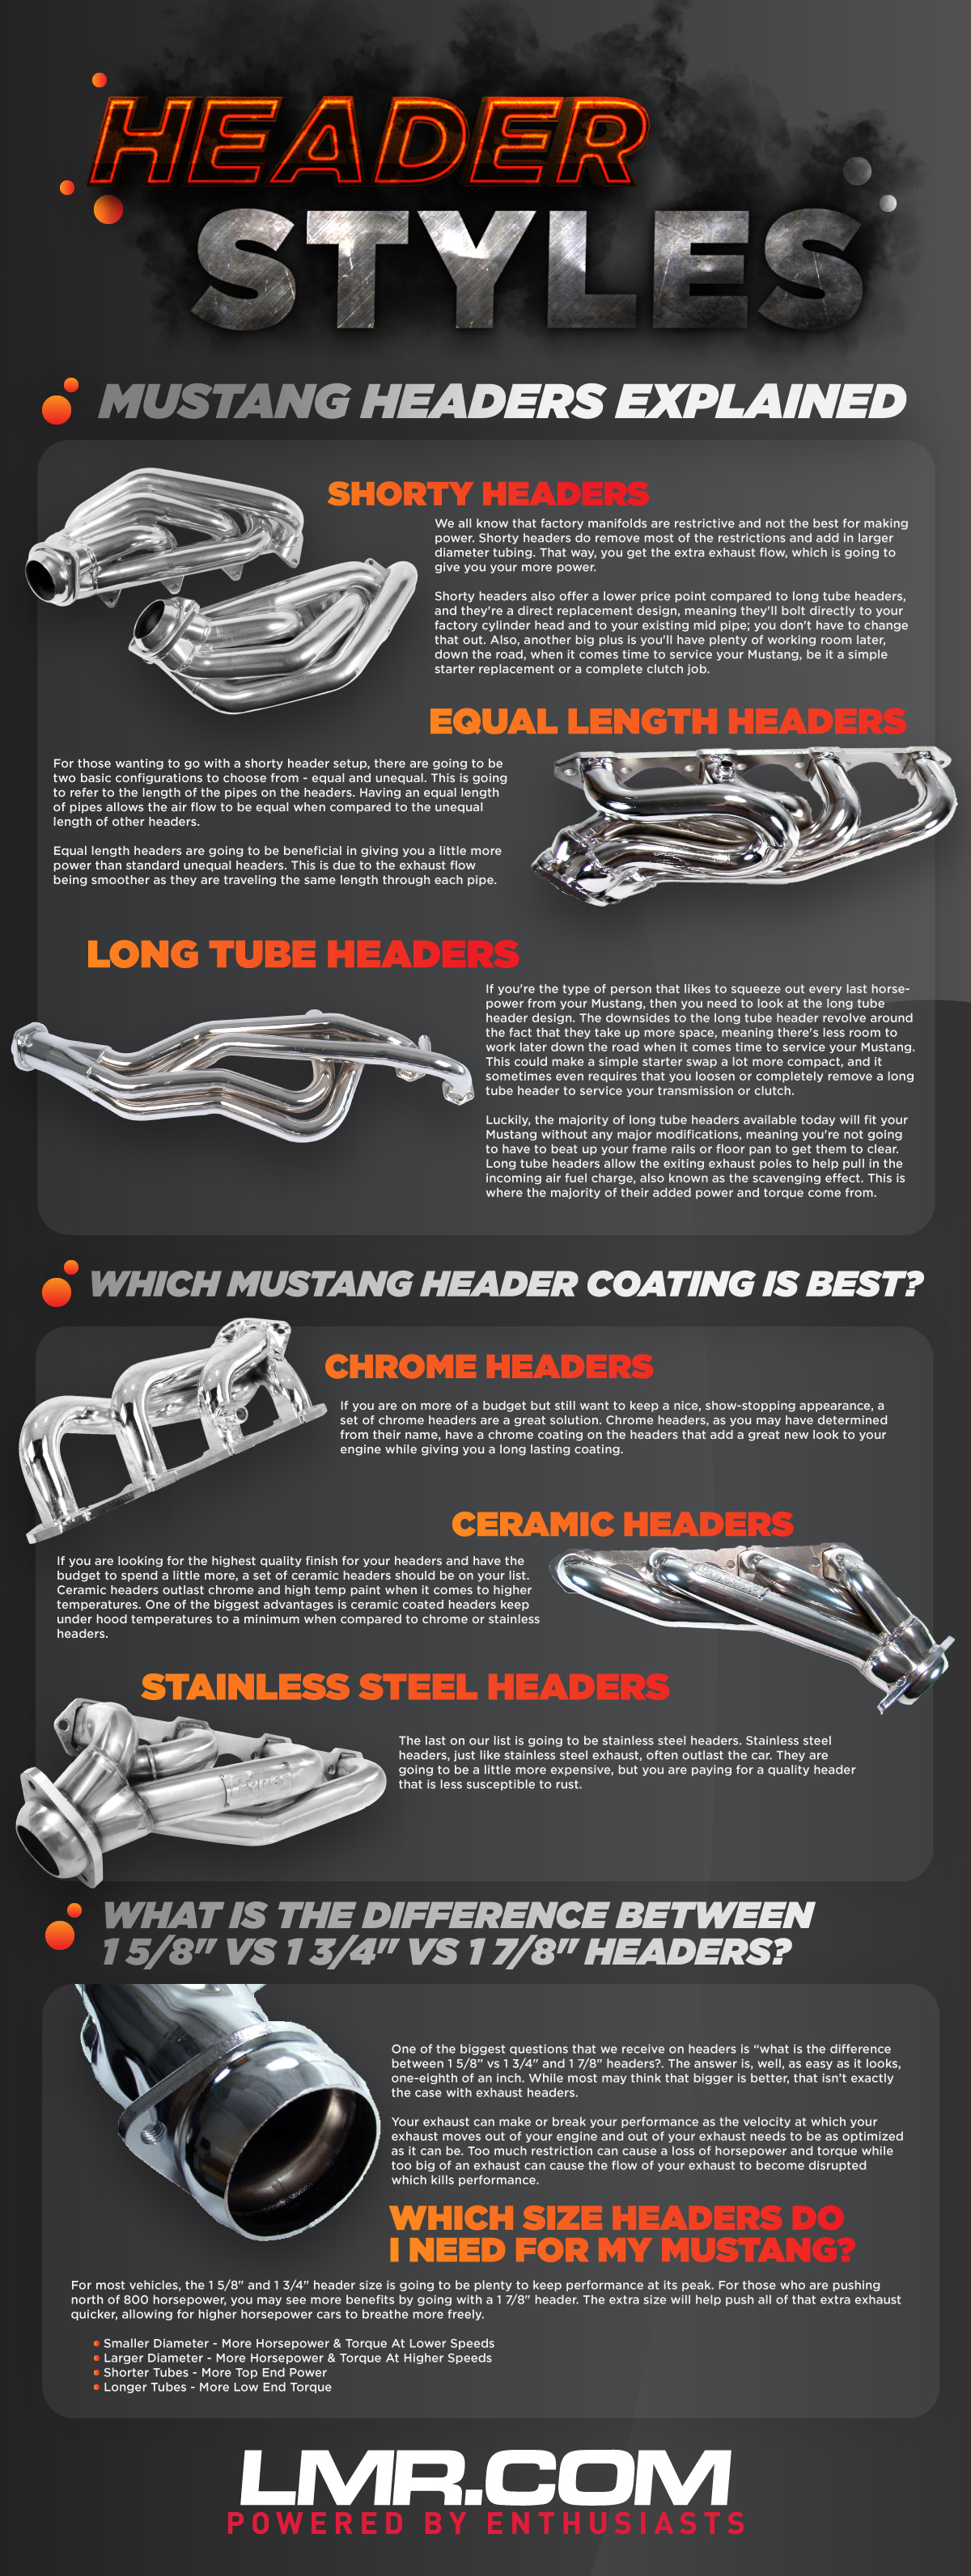 Mustang Shorty vs Long Tube Headers - Mustang Shorty vs Long Tube Headers